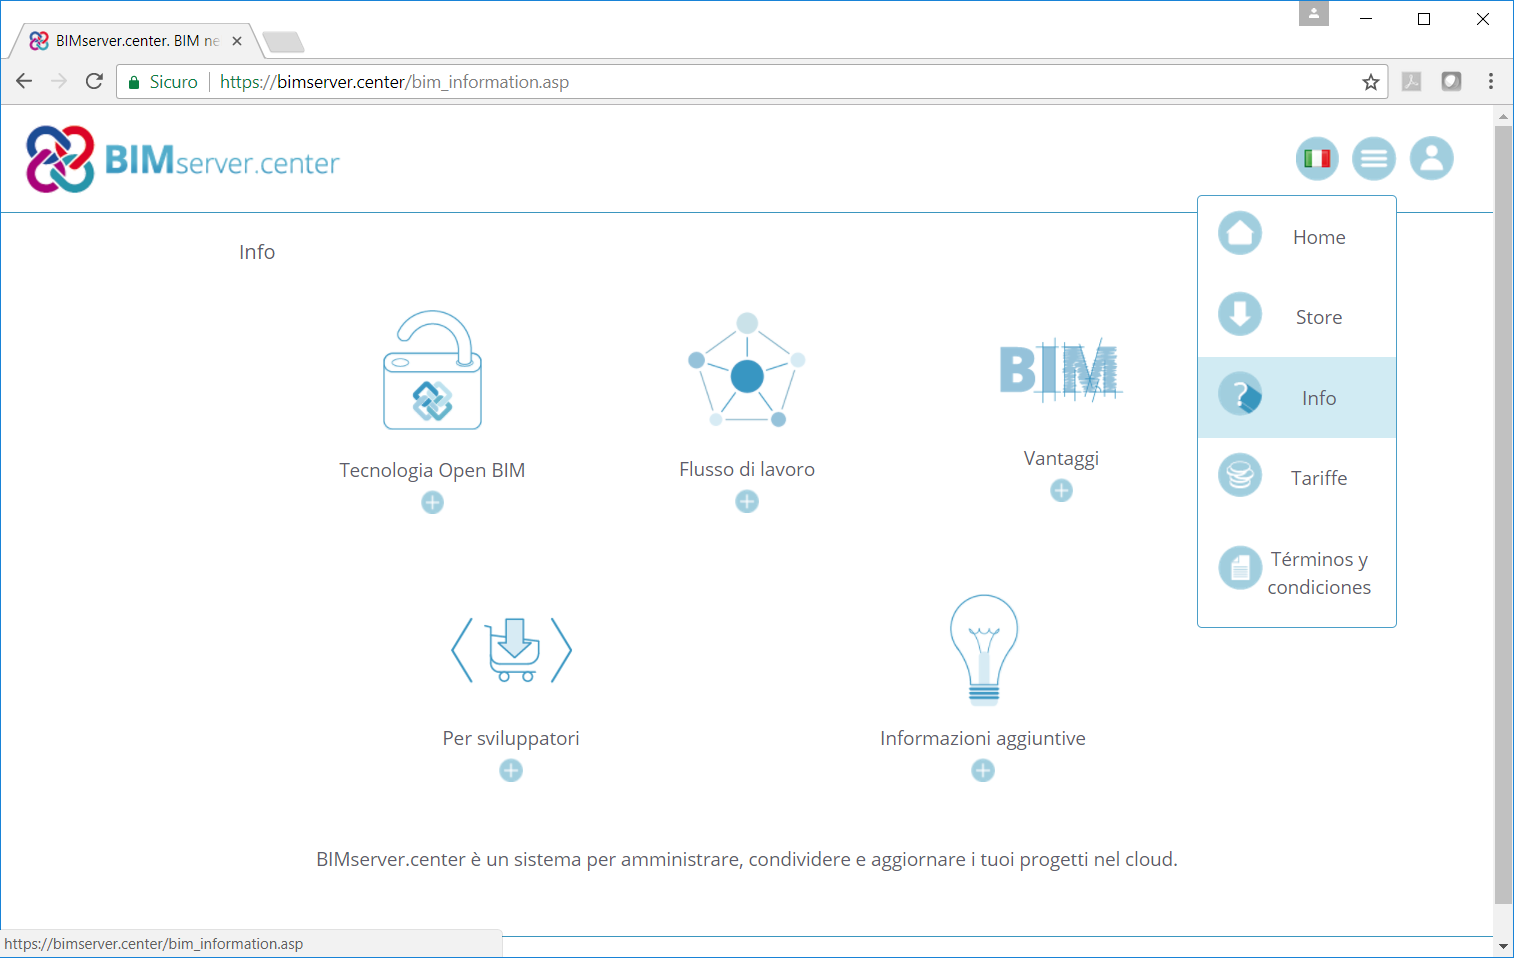 bim server center athsoftware 10